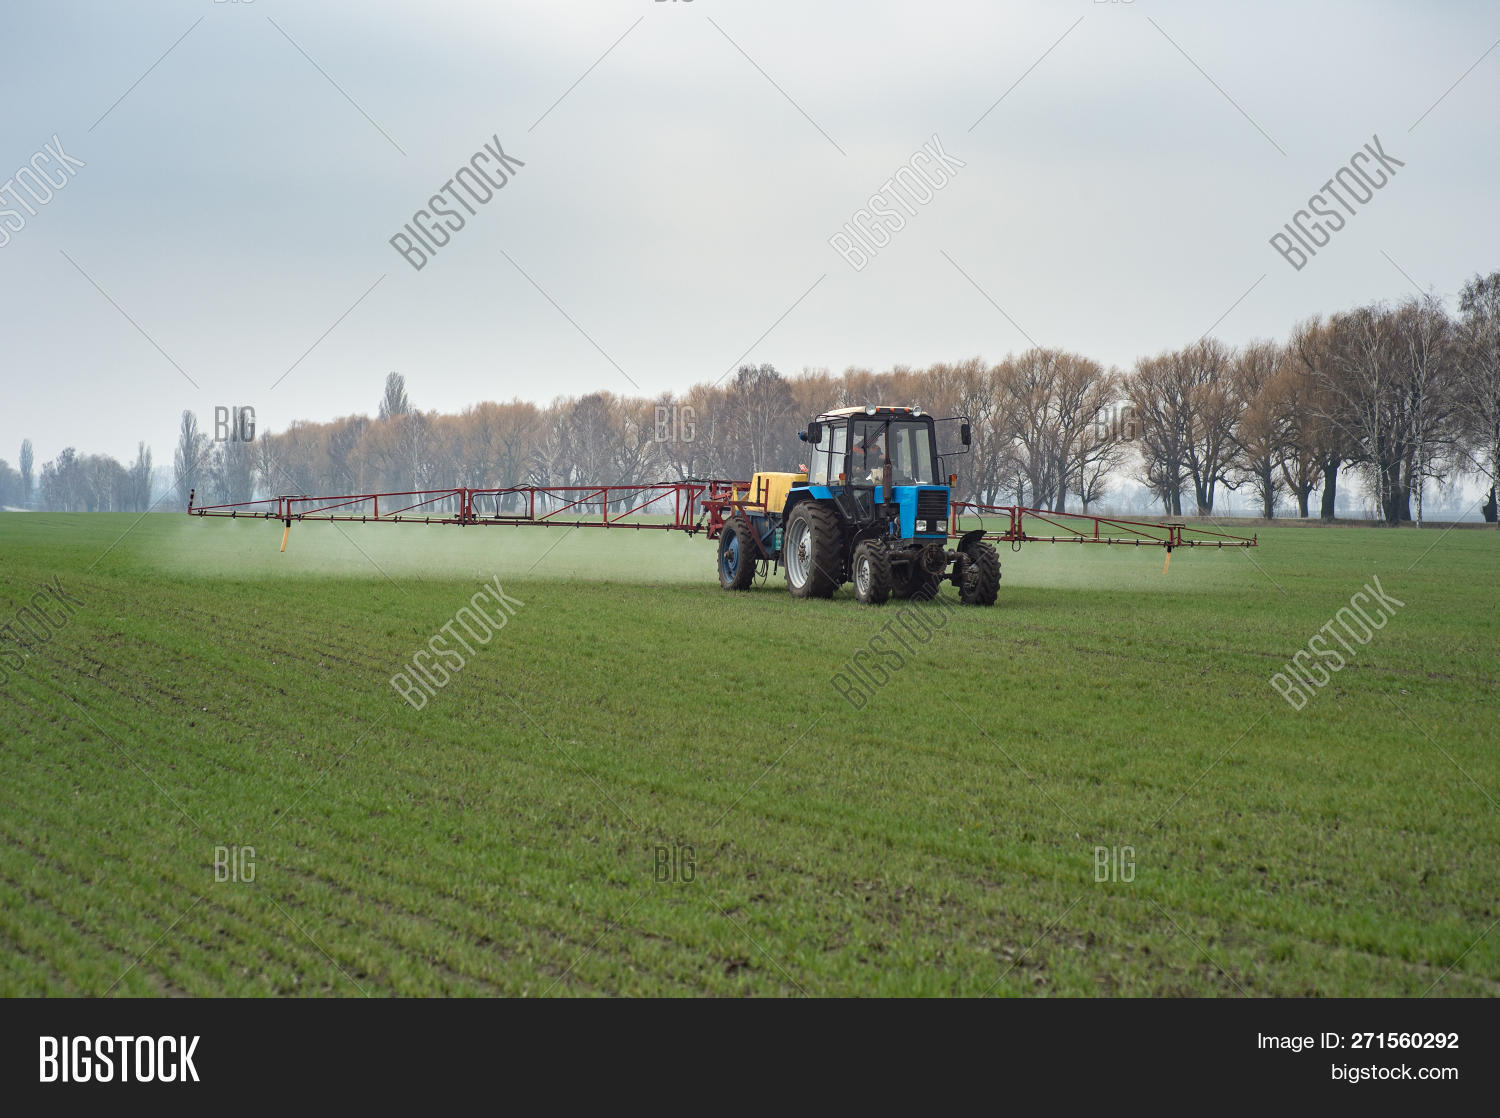 farm tractor spraying agrochemical or agrichemical over young grain field in most cases agrichemical refers to pesticides like insecticides herbicides fungicides and nematicides